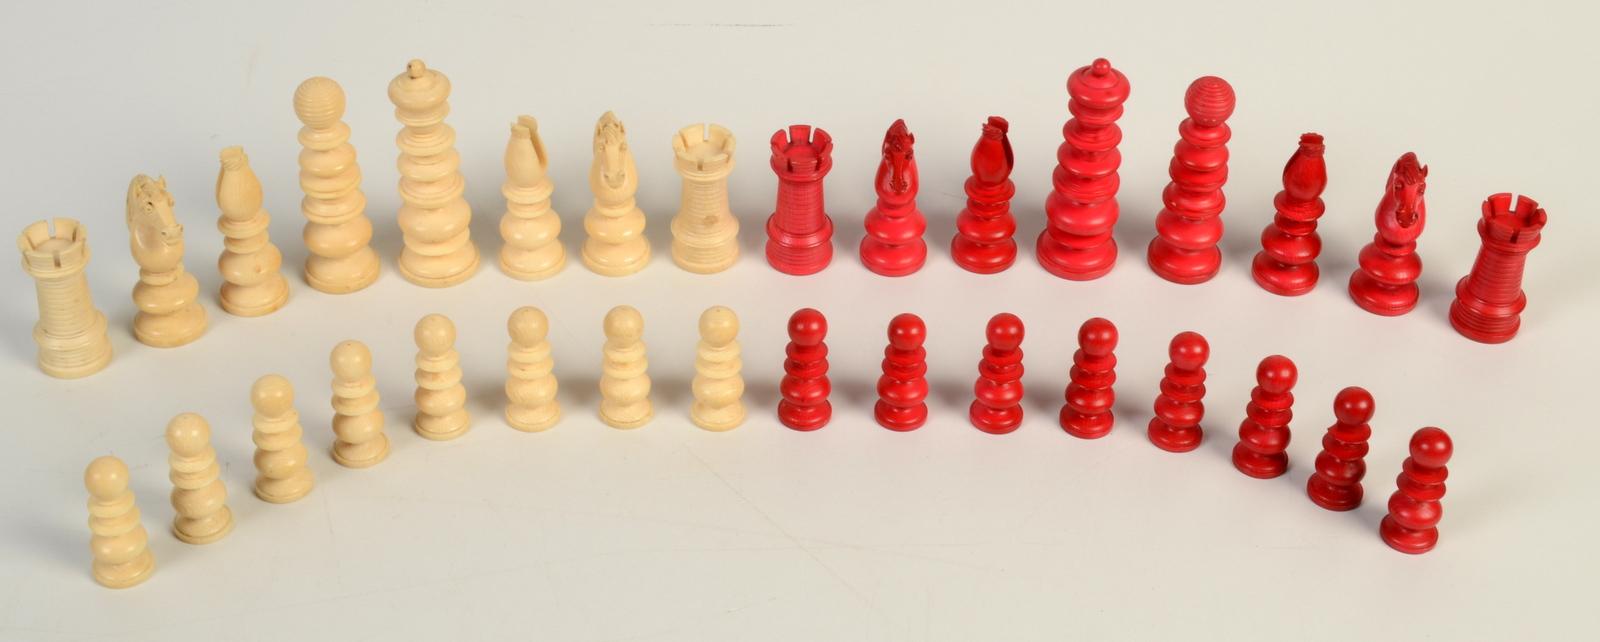 Lot 42 - A good English early 19th century ivory chess set in the Old English pattern, maximum height 8.